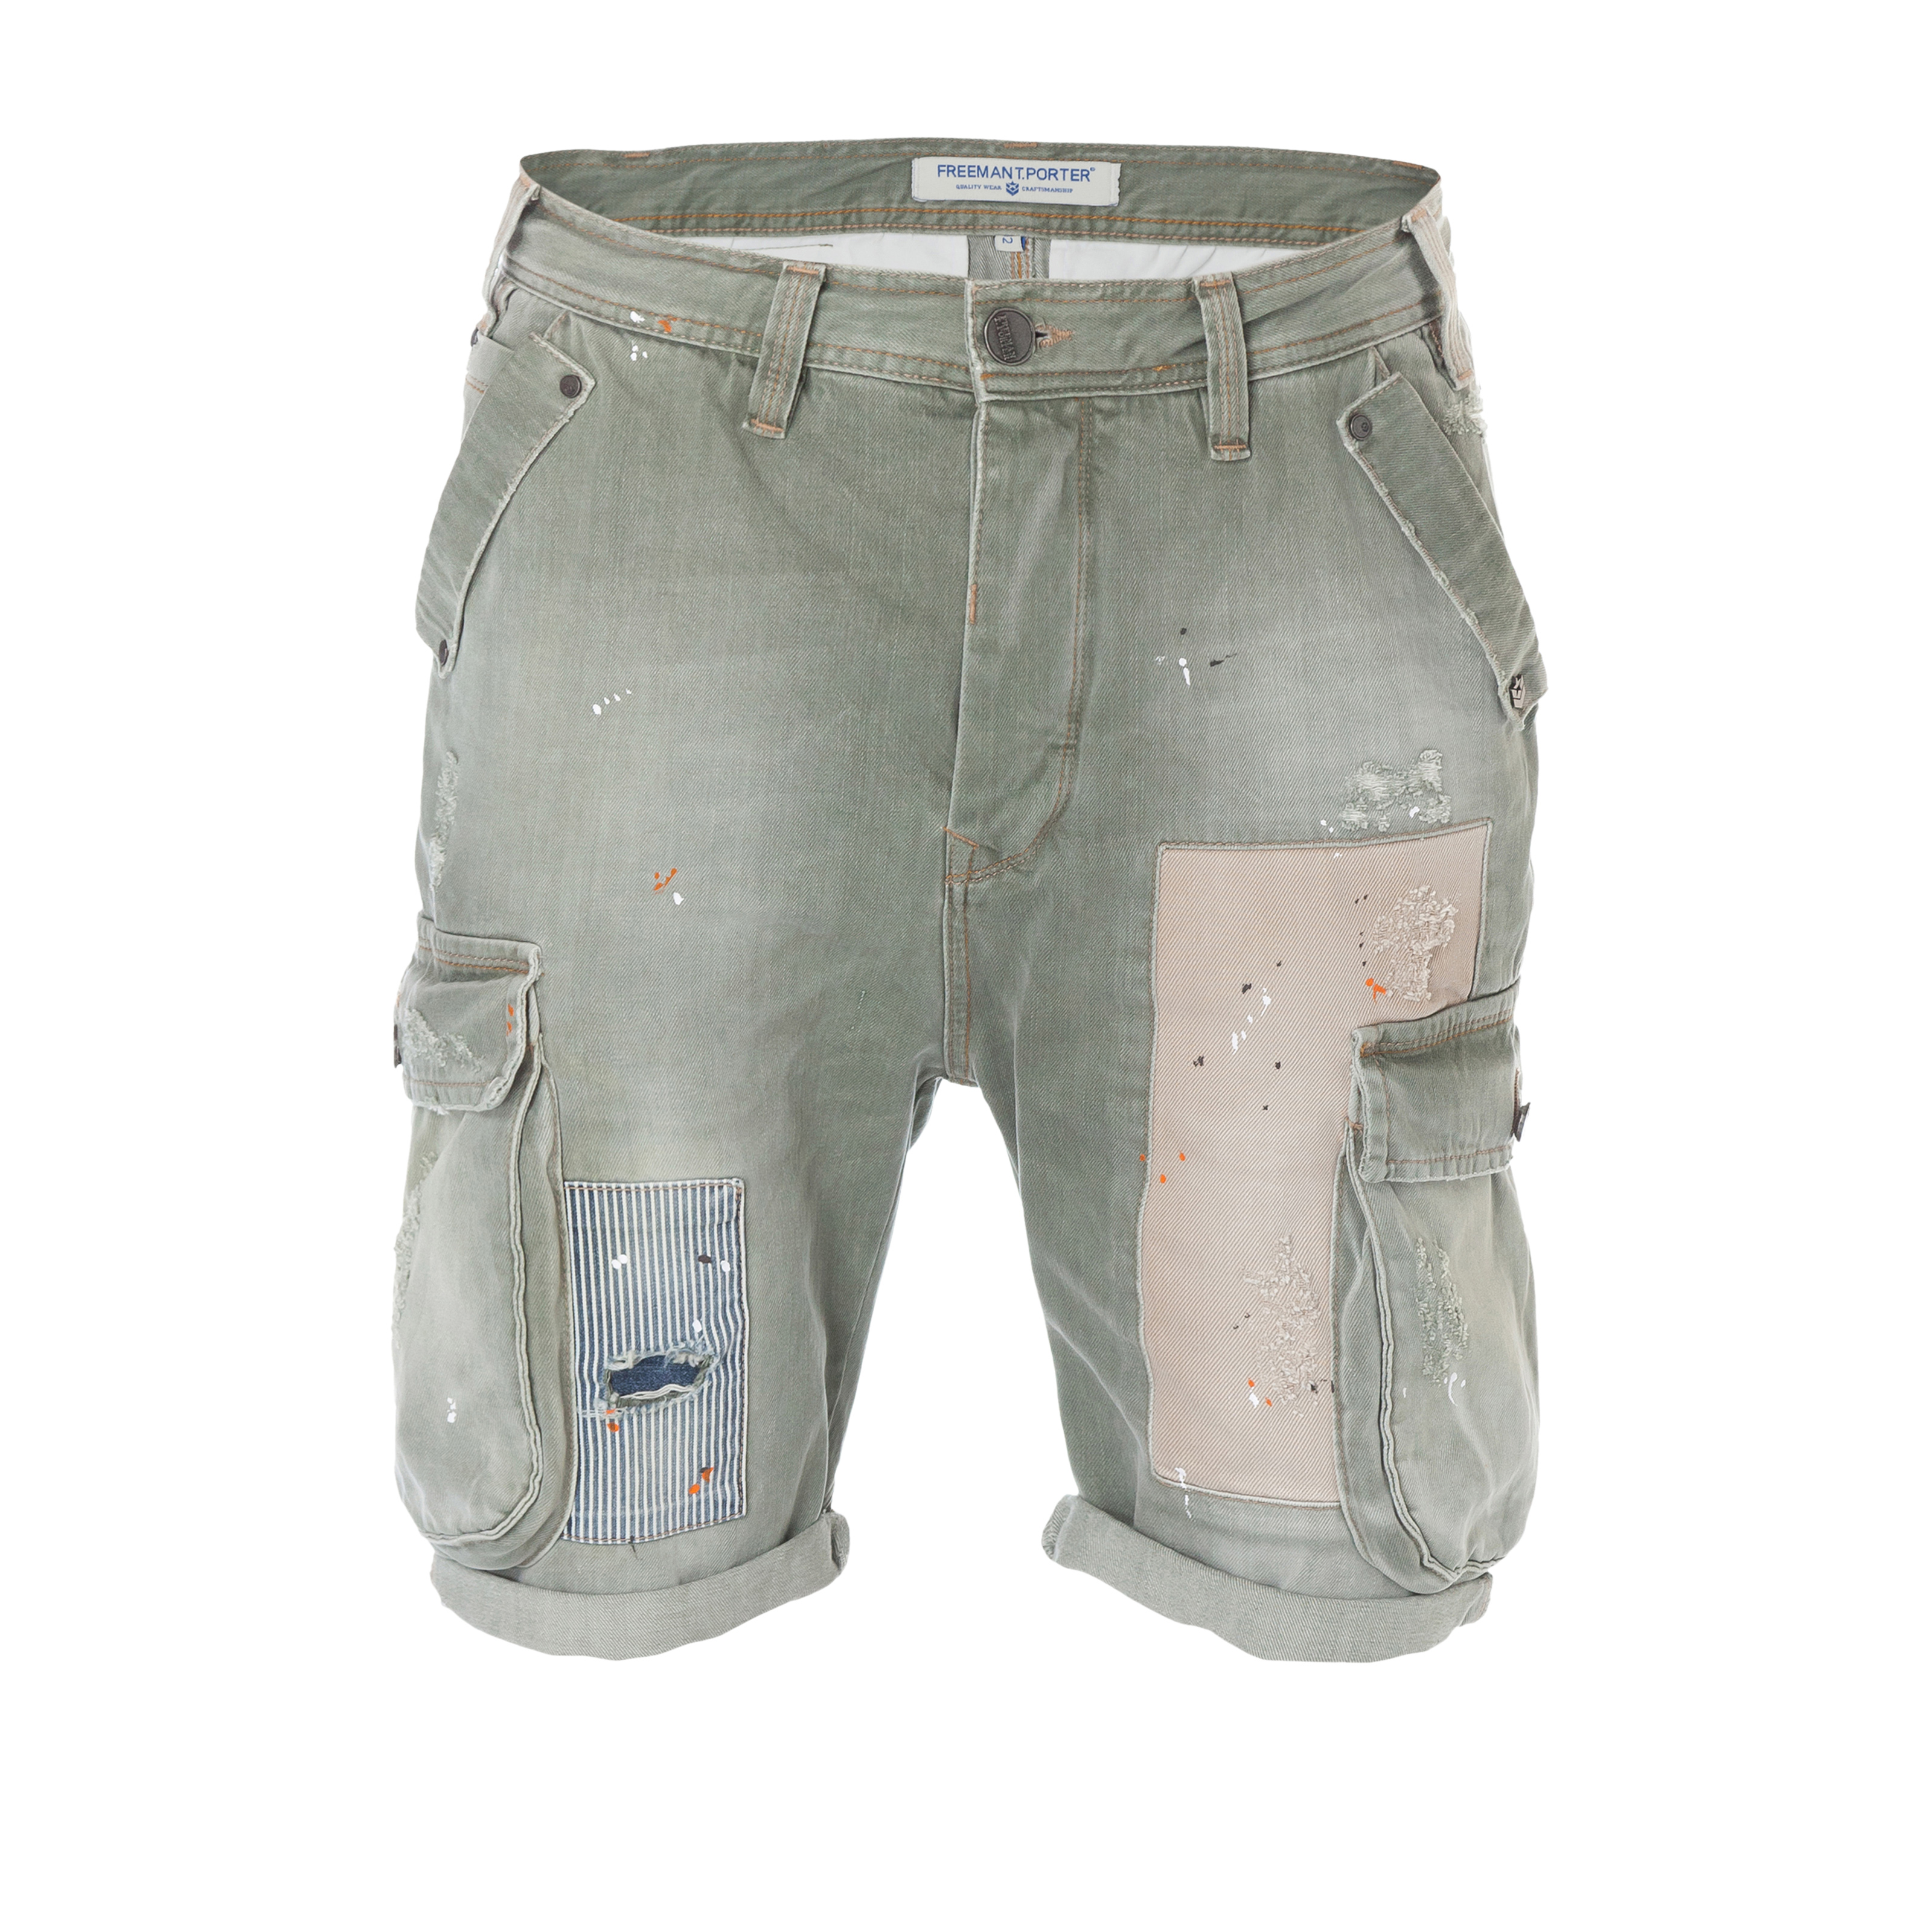 Neue Denim-Shorts im Love, Peace and Festivals-Style von Freeman T. Porter